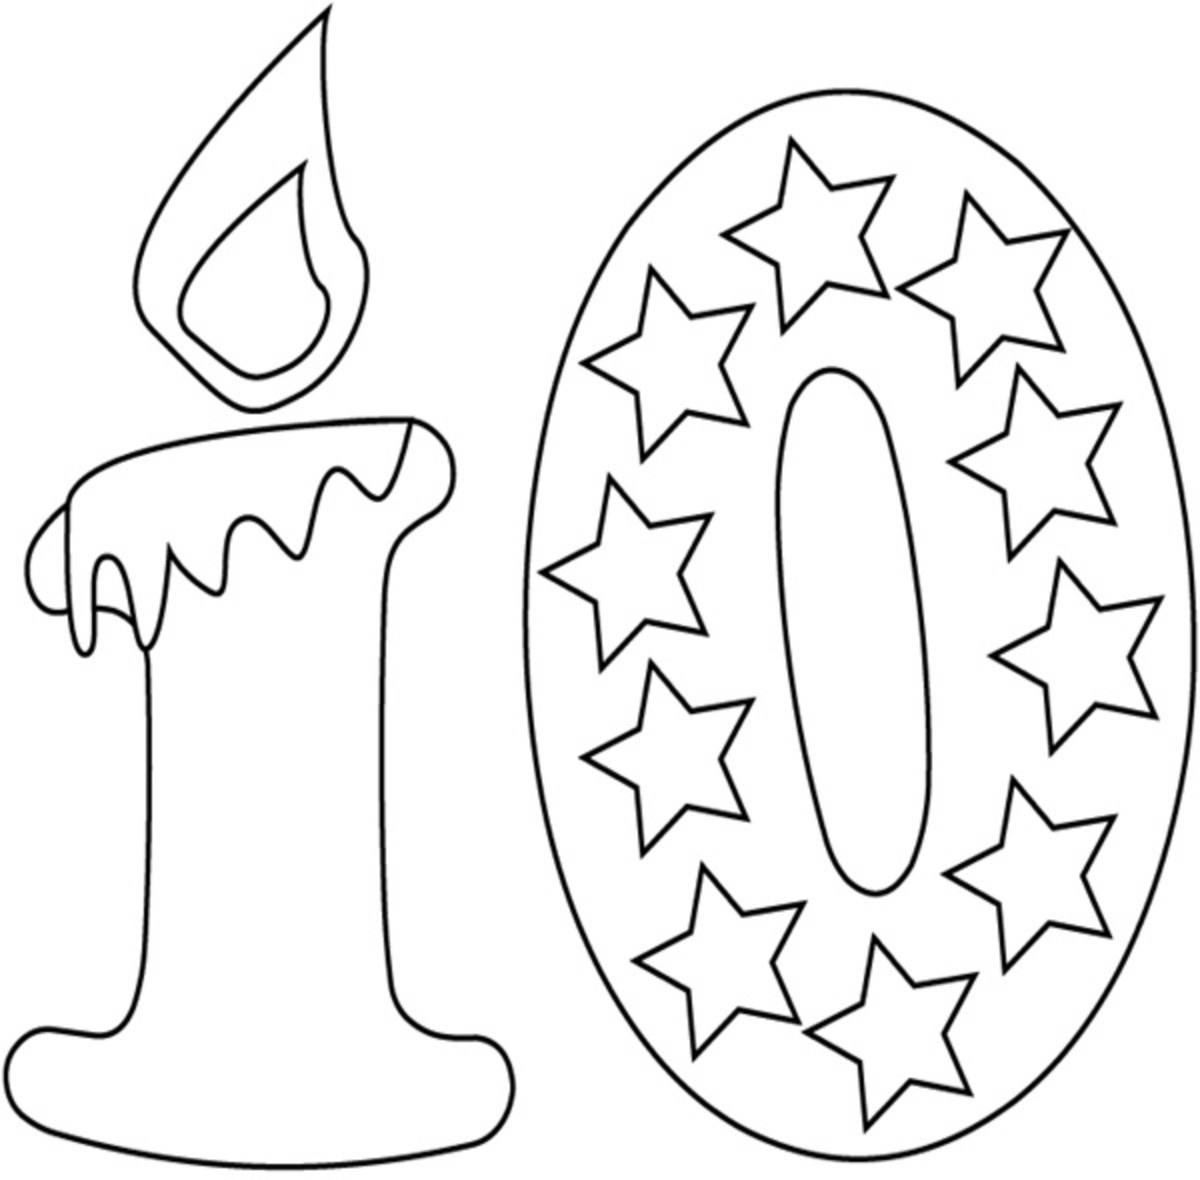 coloring pages for number 10 - photo#23